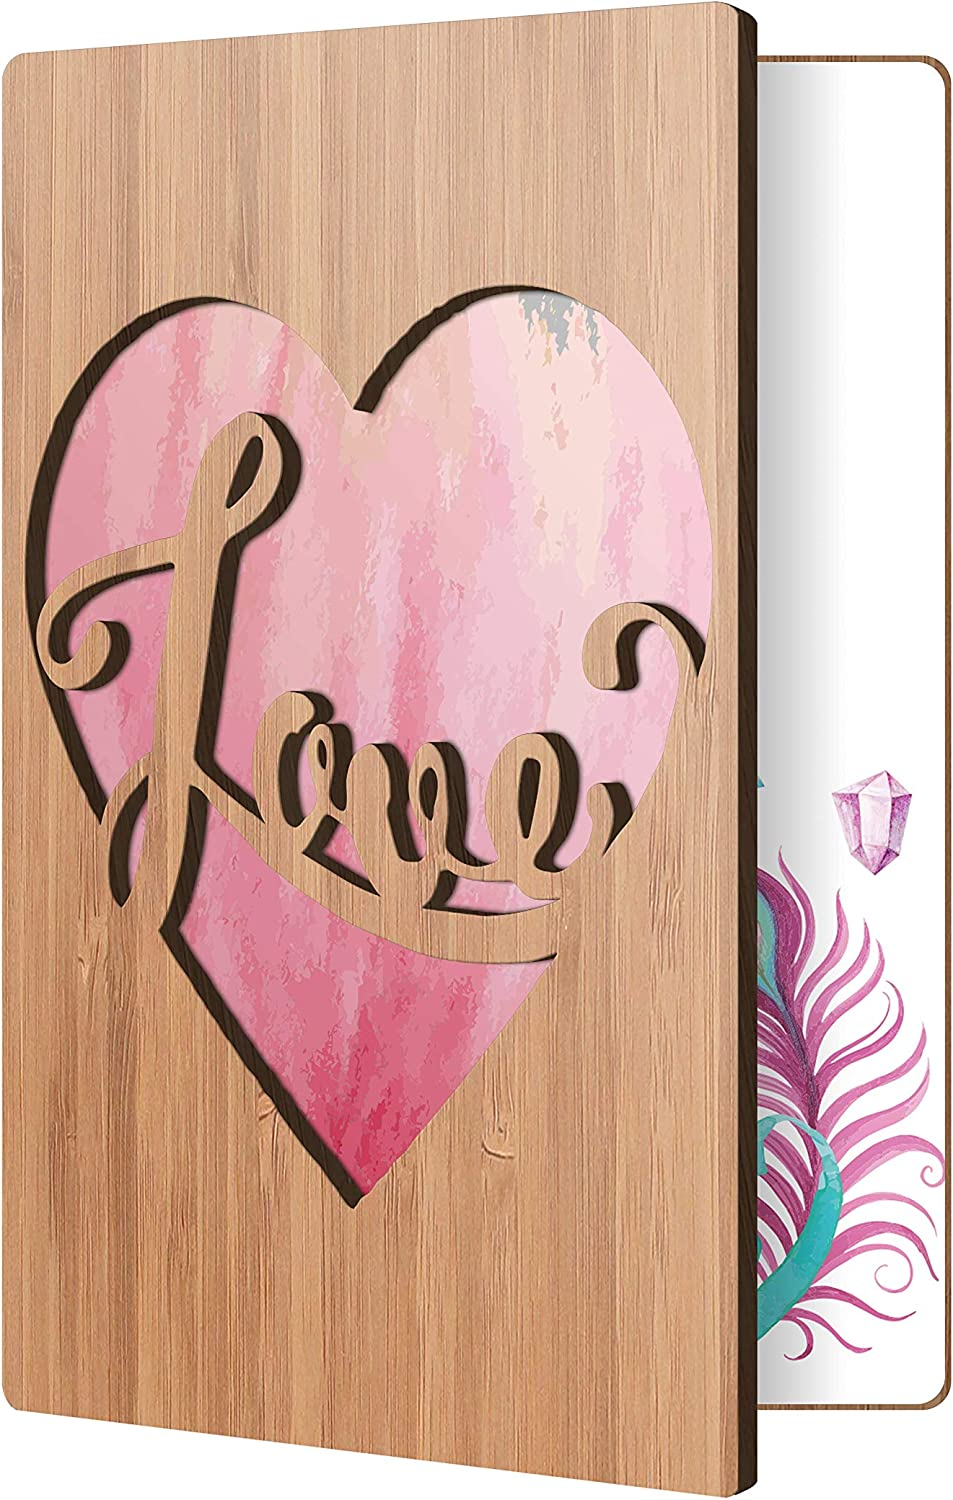 Him Or Her; Romantic Anniversary Gift Husband Love Card: Real Wood Valentines Day Card For Wife